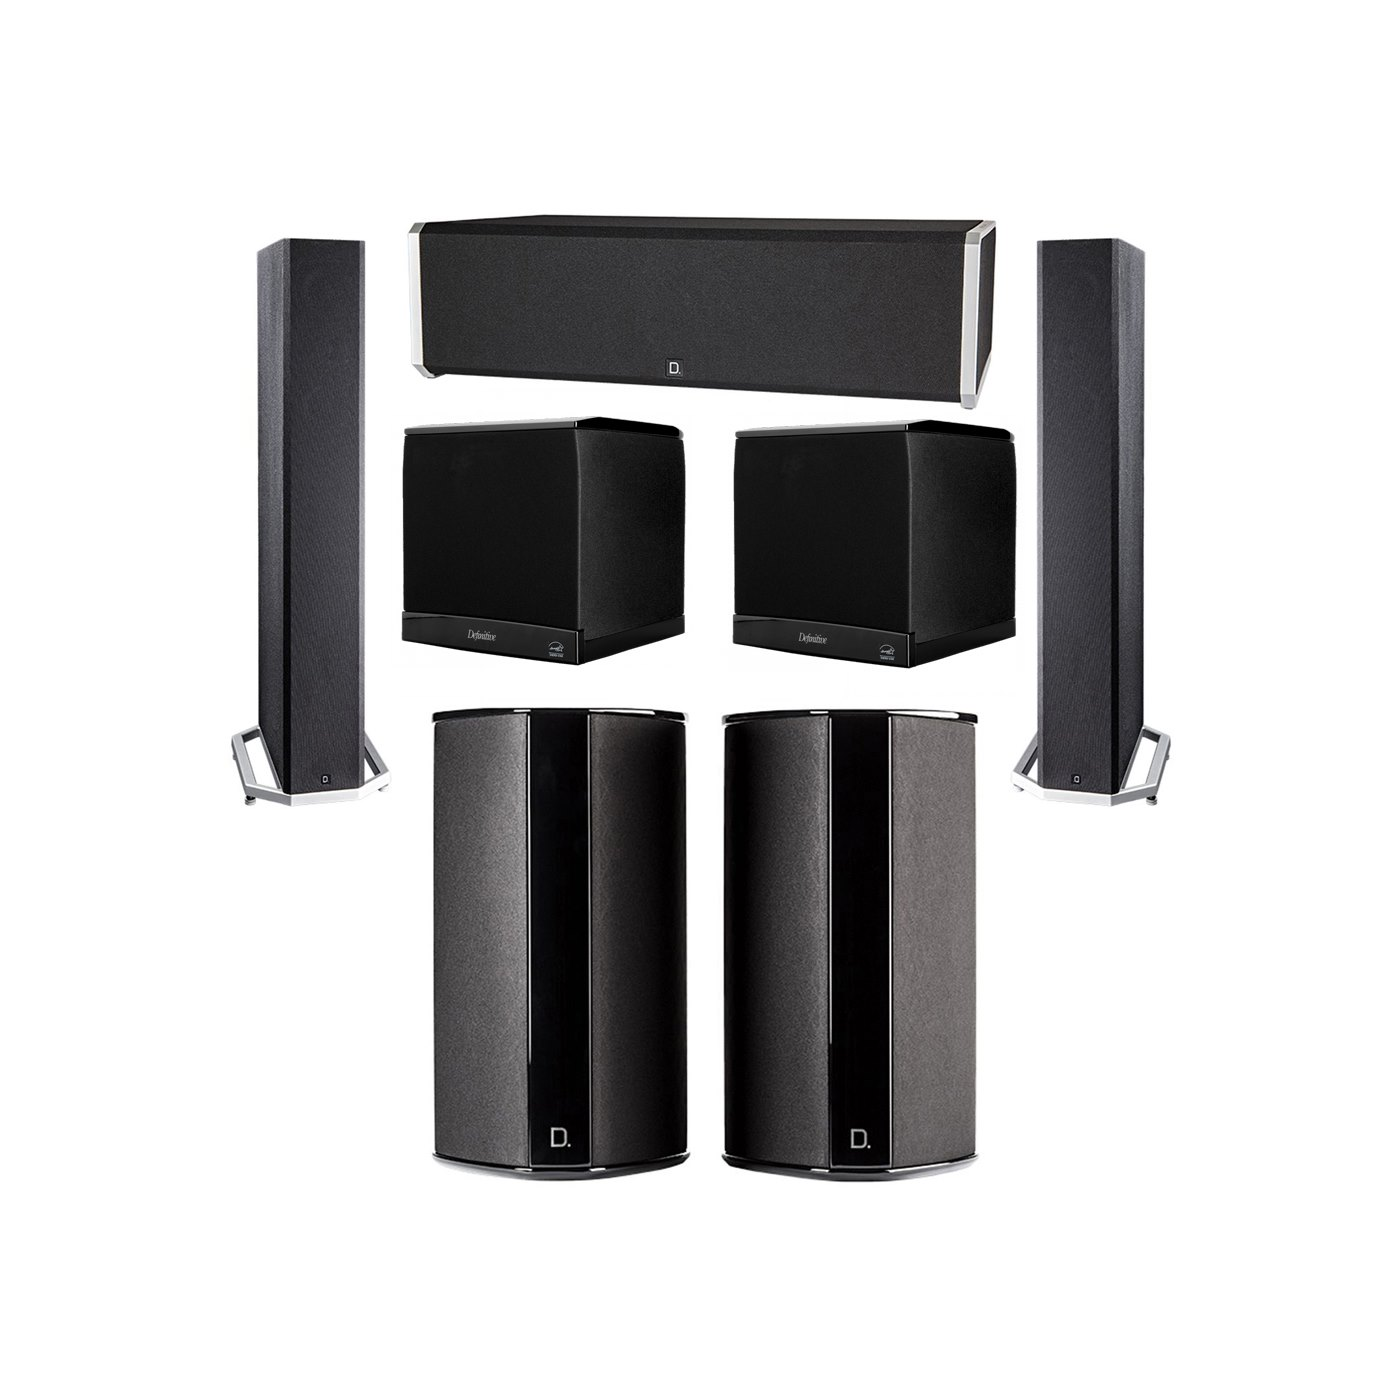 Definitive Technology 5.2 System with 2 BP9040 Tower Speakers, 1 CS9040 Center Channel Speaker, 2 SR9080 Surround Speaker, 2 Definitive Technology SuperCube 4000 Powered Subwoofer